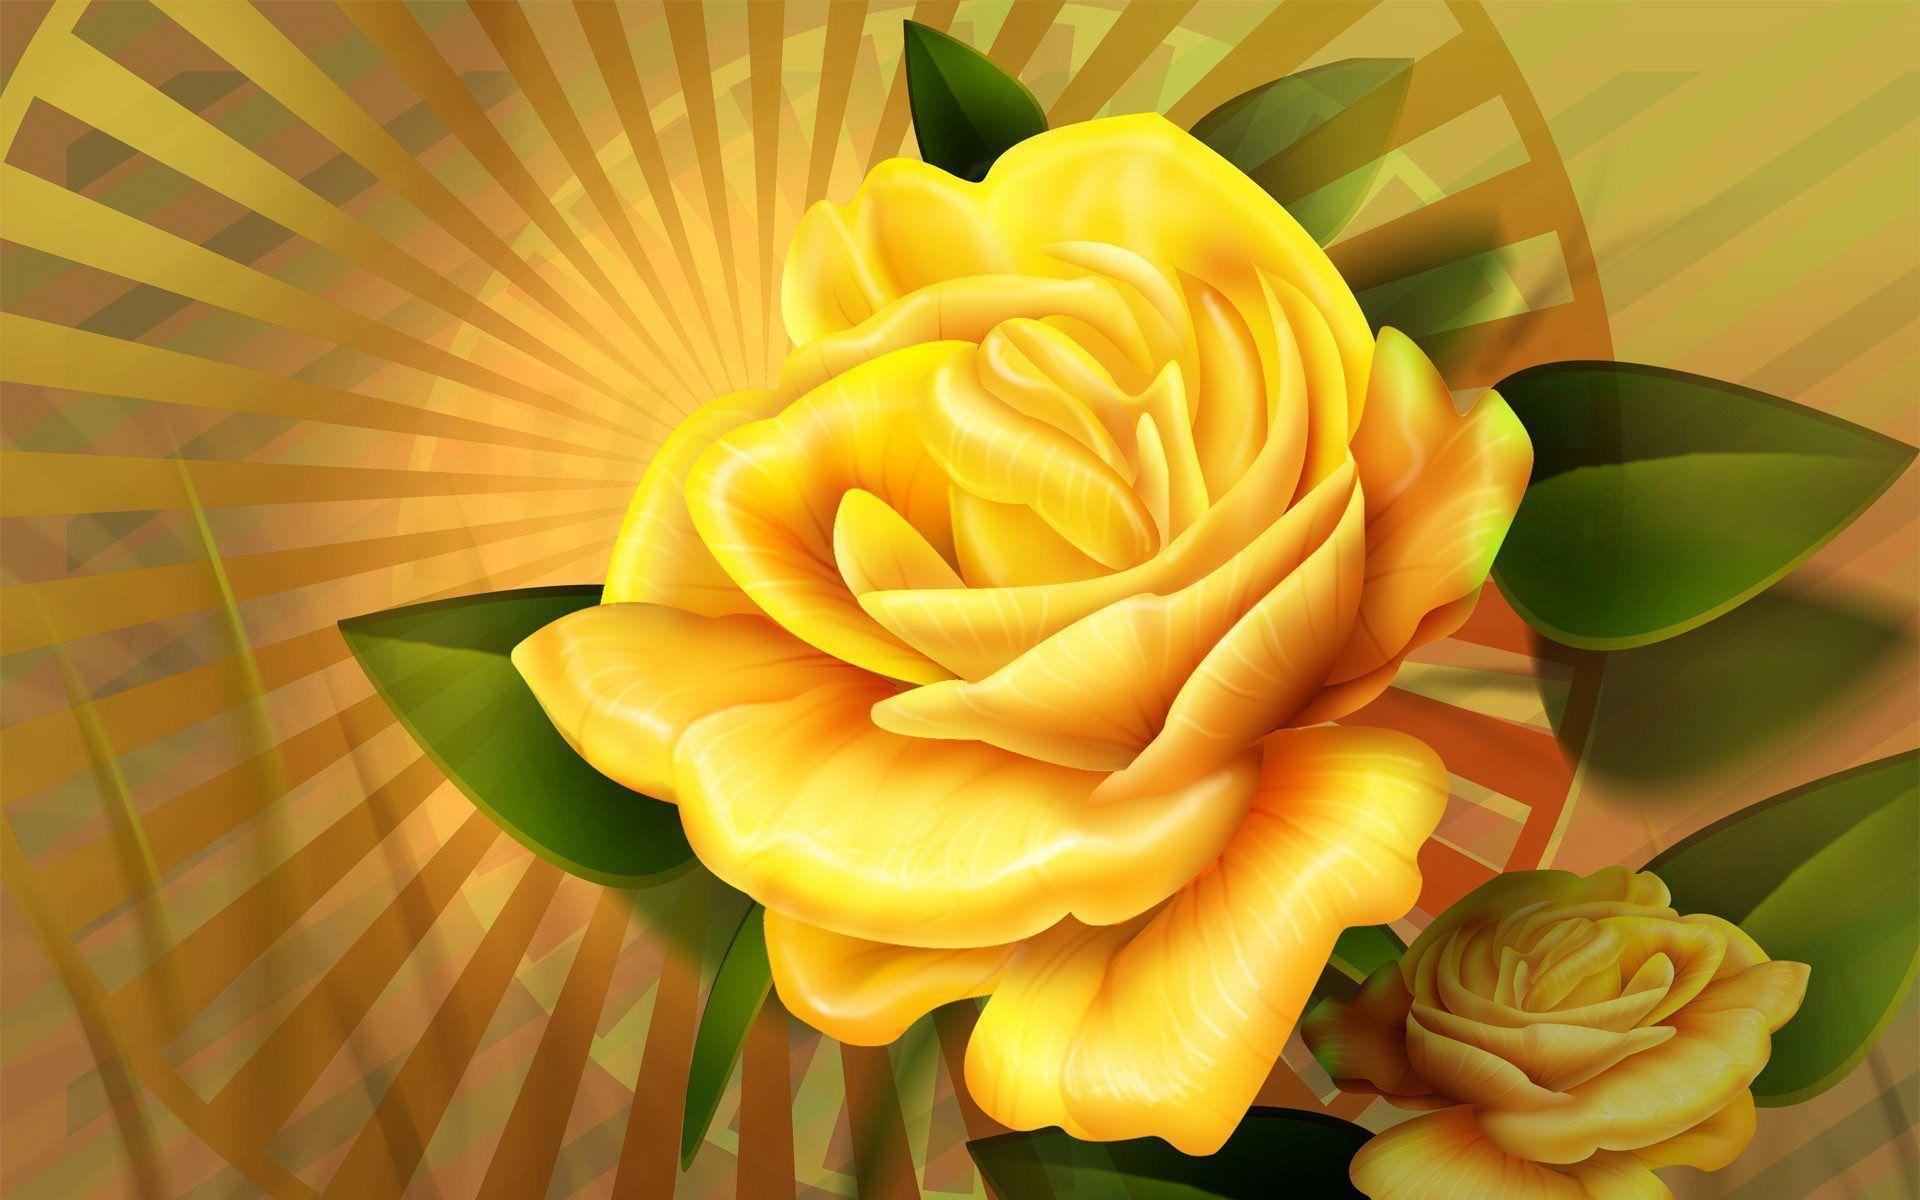 Yellow Rose Flowers Wallpapers Hd Cool 7 HD Wallpapers